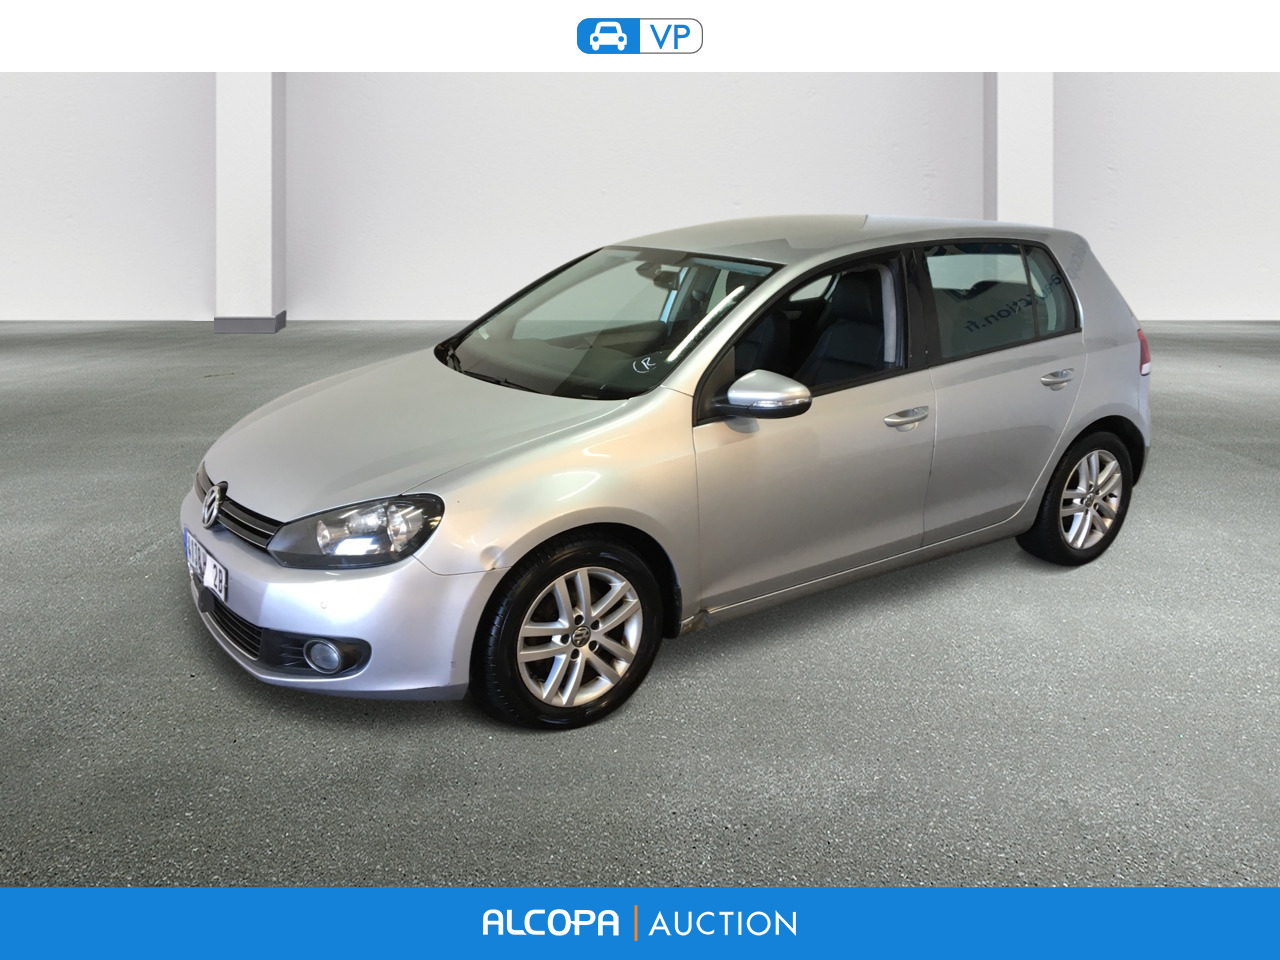 volkswagen golf golf 1 4 tsi 122ch carat dsg7 5p tours alcopa auction. Black Bedroom Furniture Sets. Home Design Ideas